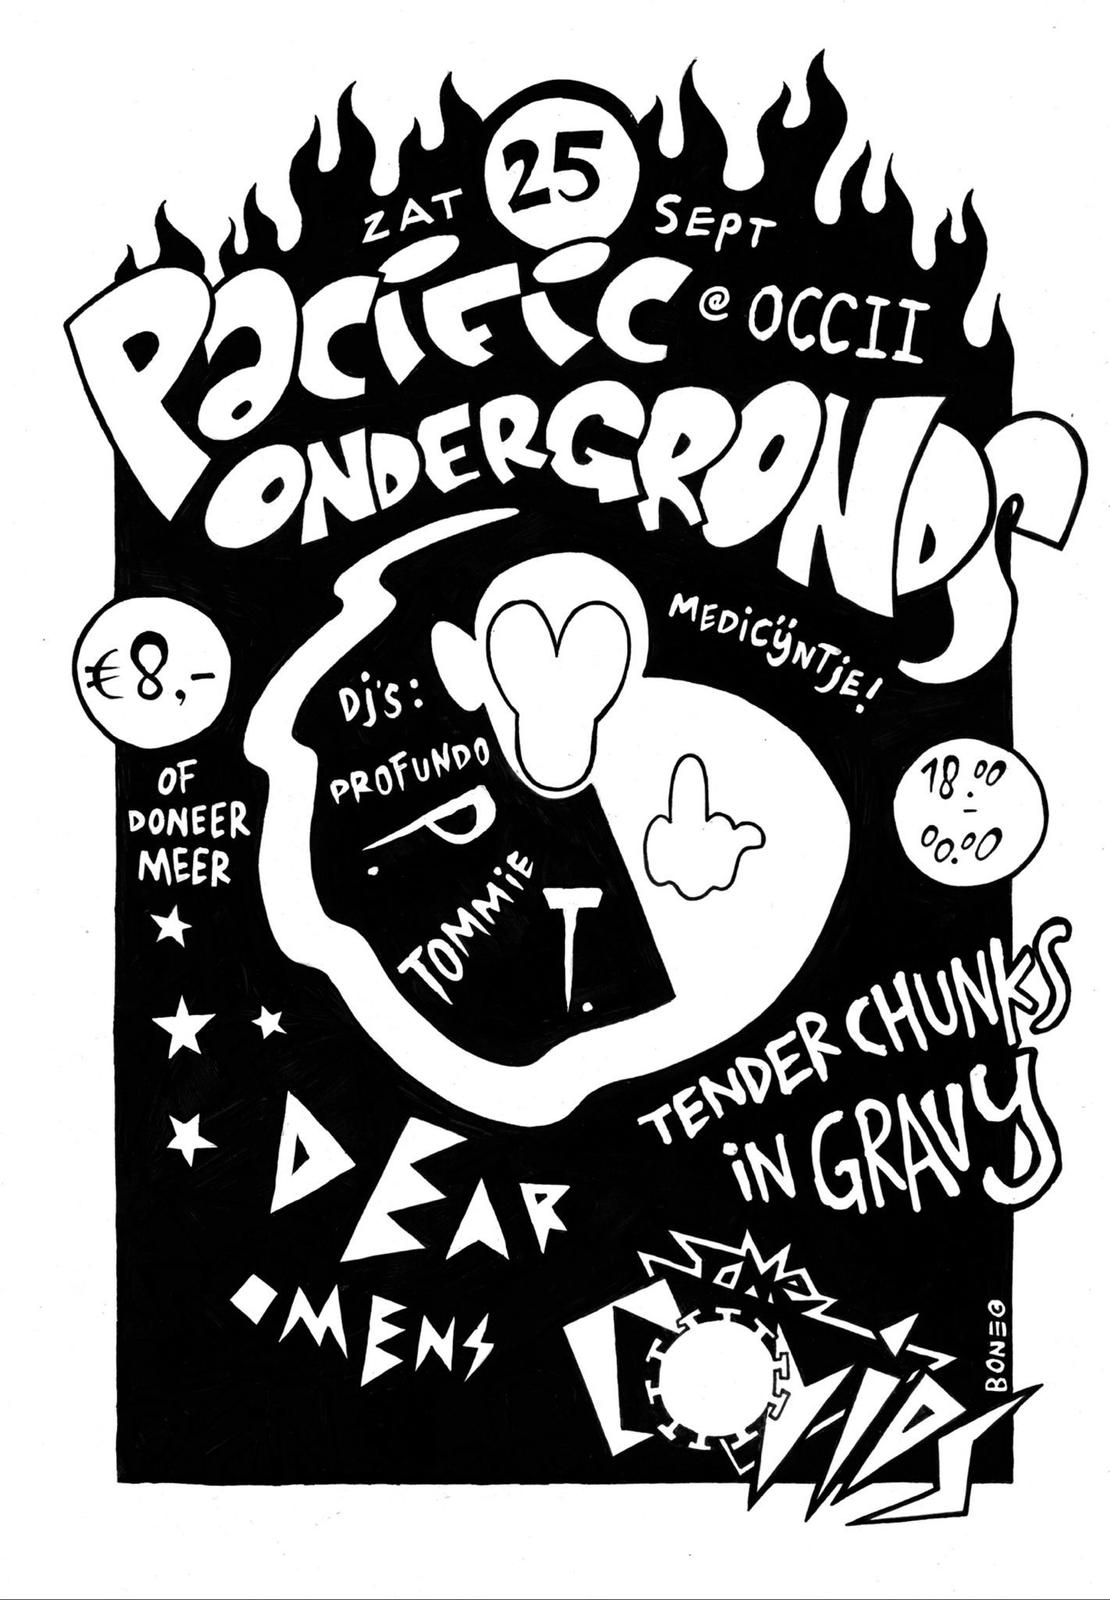 [sold out] TENDER CHUNKS IN GRAVY + DEAR OMENS + THE COVIDS + DJ's PROFUNDO P. & TOMMY T.